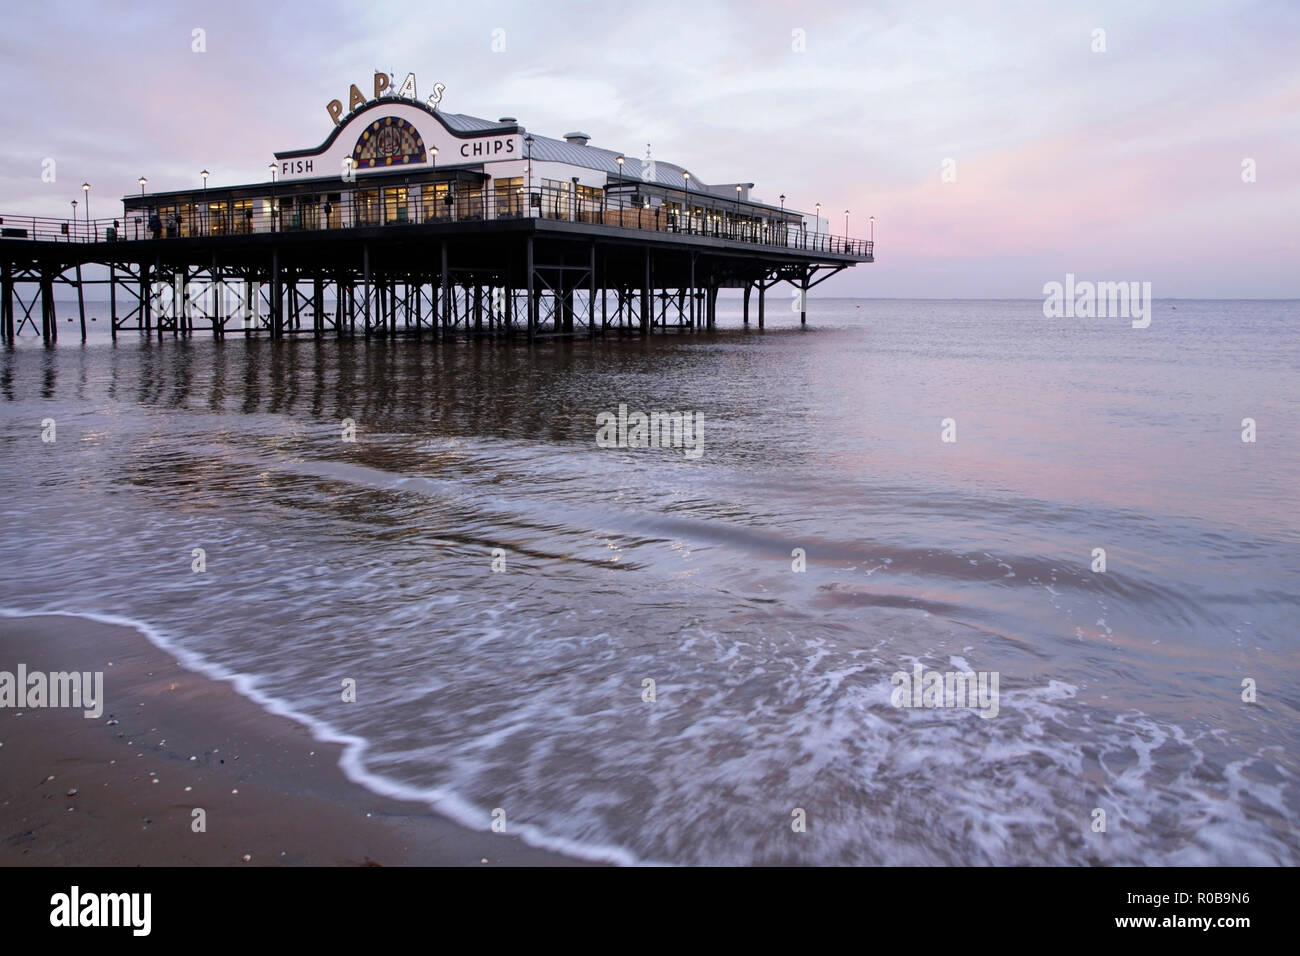 Cleethorpes pier, Lincolnshire, UK at dusk. - Stock Image